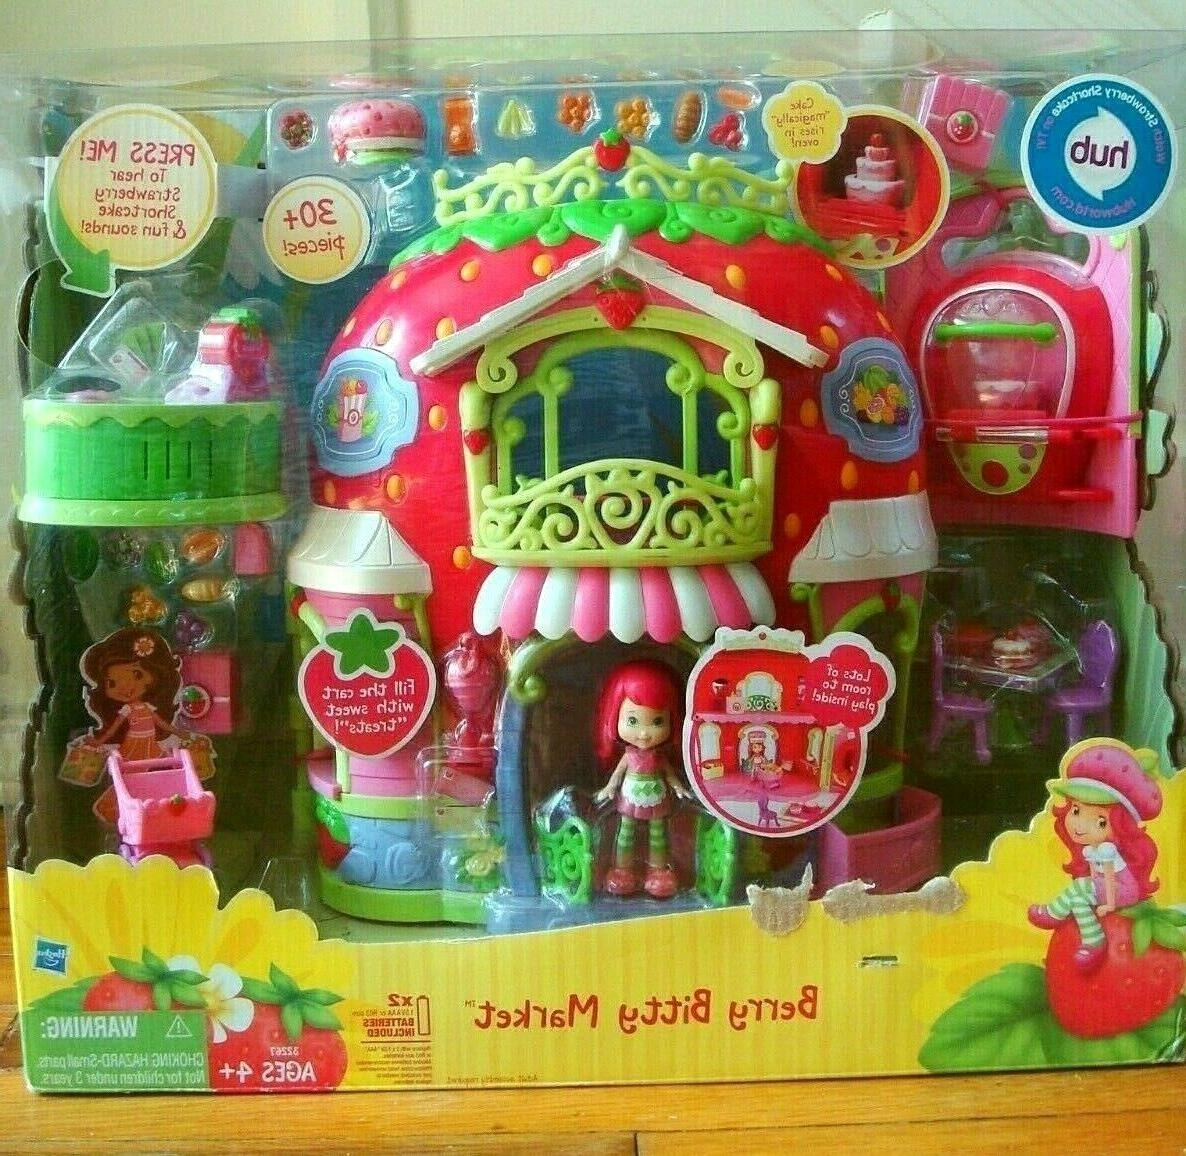 strawberry shortcake berry bitty market play set